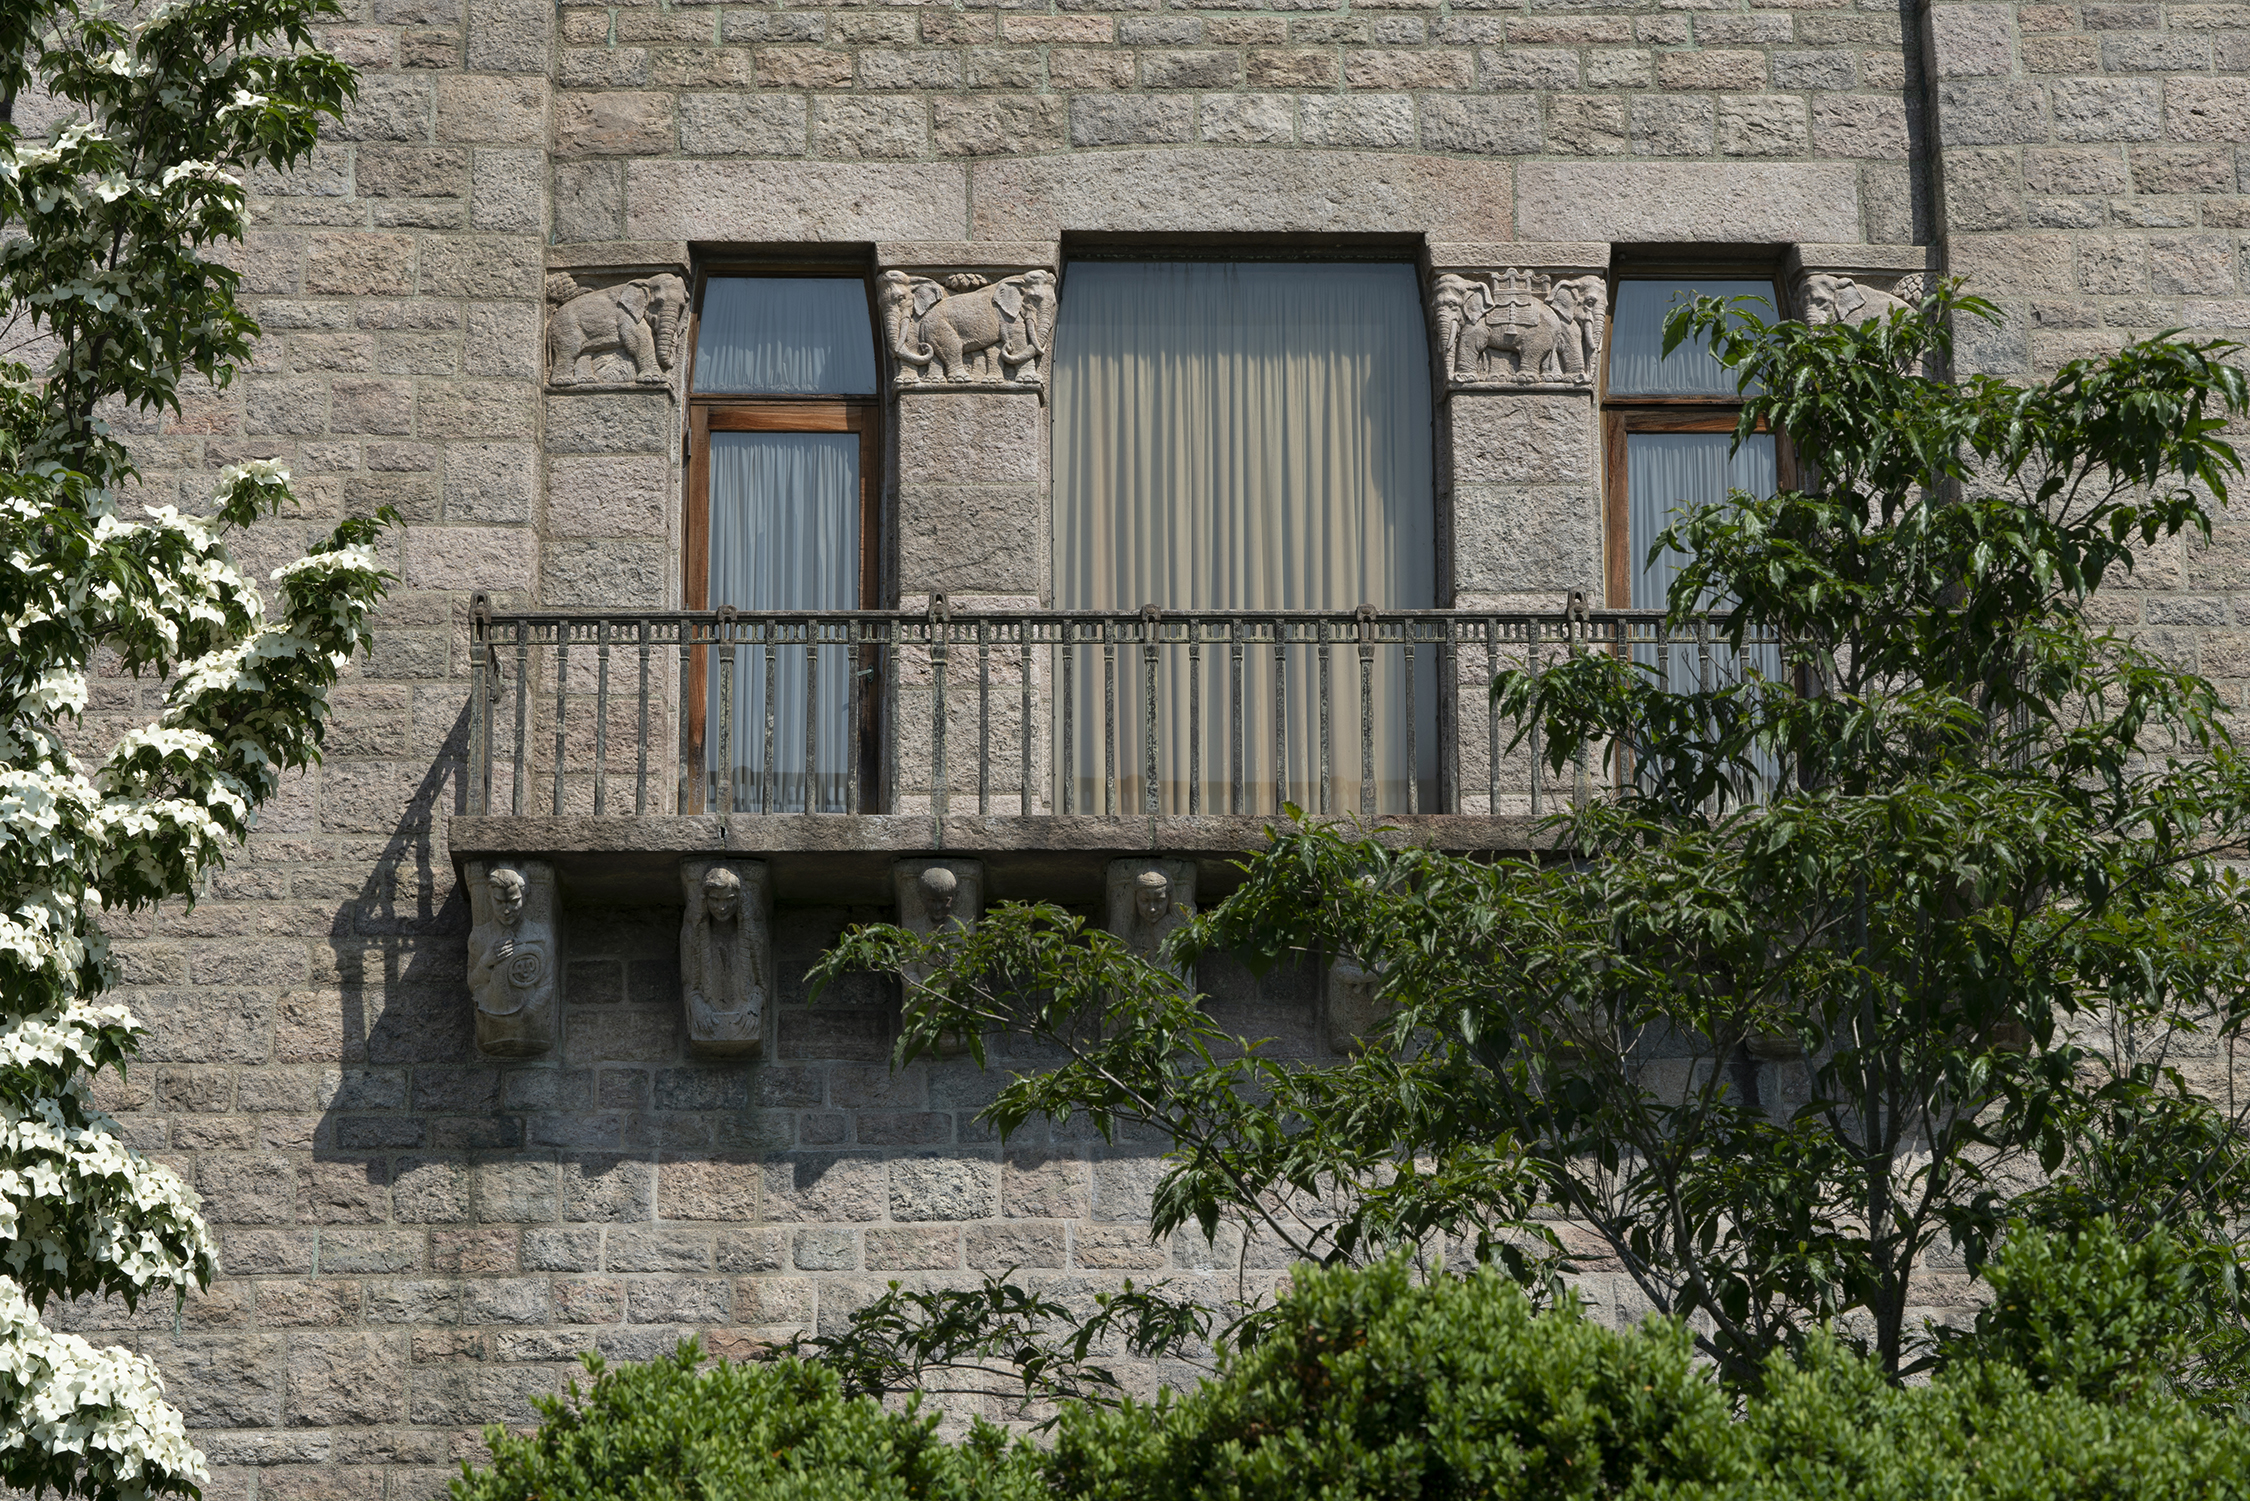 Figure 22: Today the Monel metal railing graces a third floor balcony on Glencairn's south side. The corbels supporting it depict the Pitcairn children holding various musical instruments.